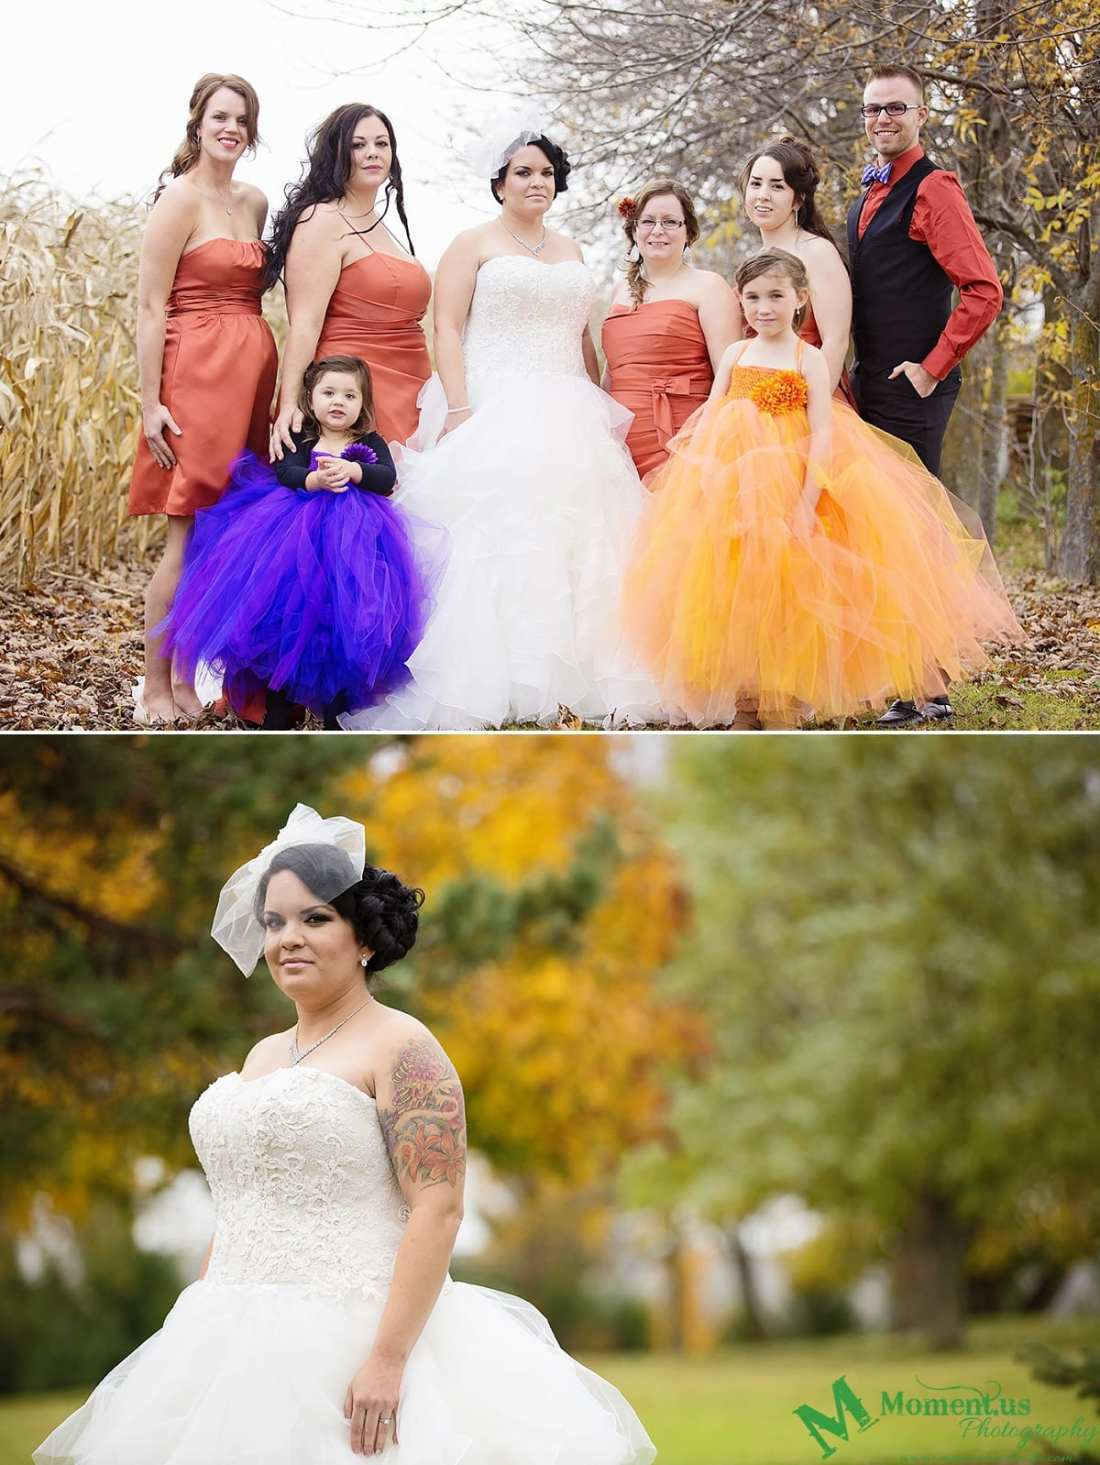 Alexandria wedding - bridal party in orange